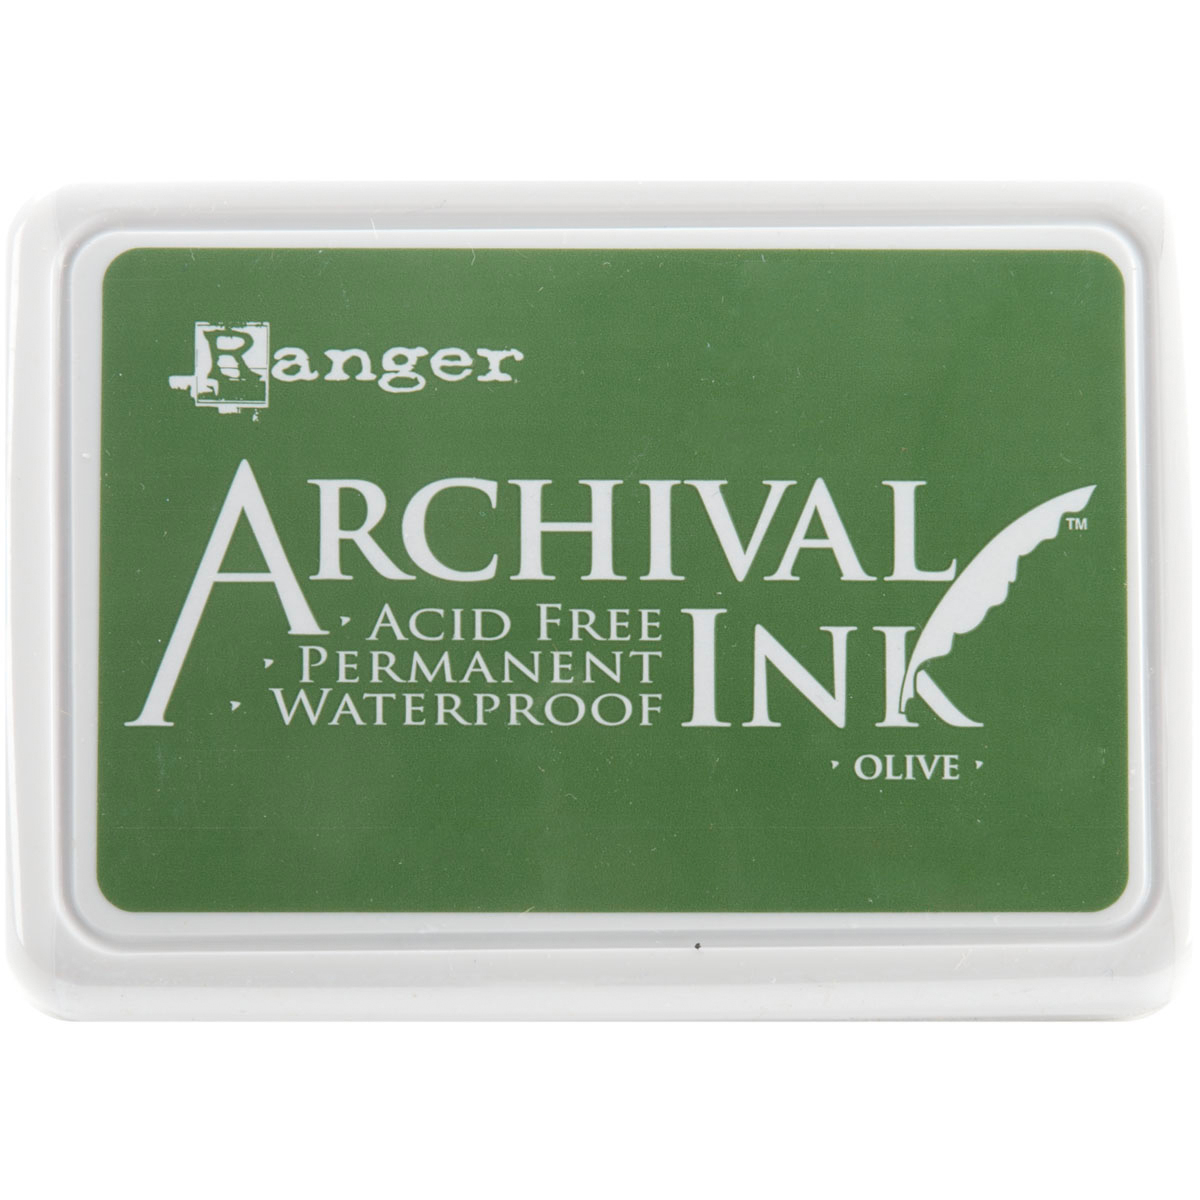 Archival Ink - Olive